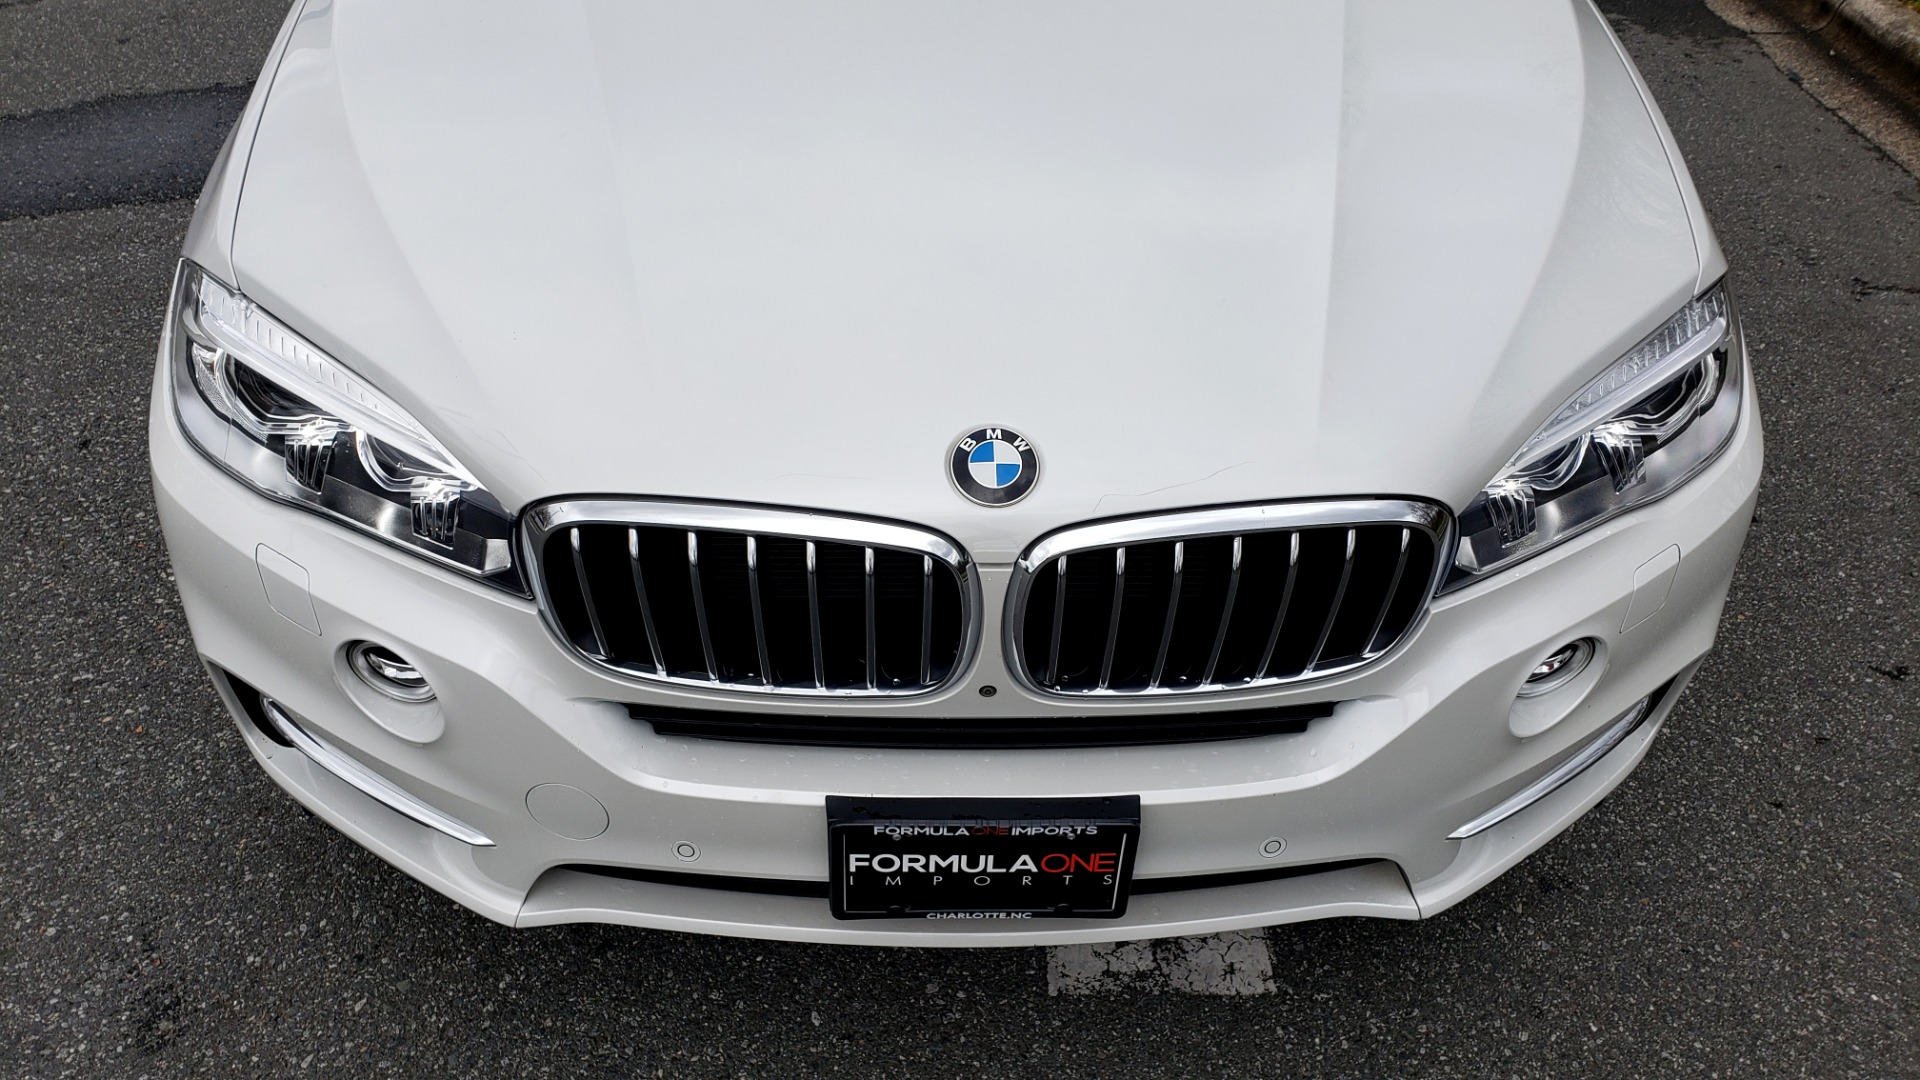 Used 2017 BMW X5 XDRIVE35I / NAV / HUD / DRVR ASST / SUNROOF / REARVIEW for sale Sold at Formula Imports in Charlotte NC 28227 14